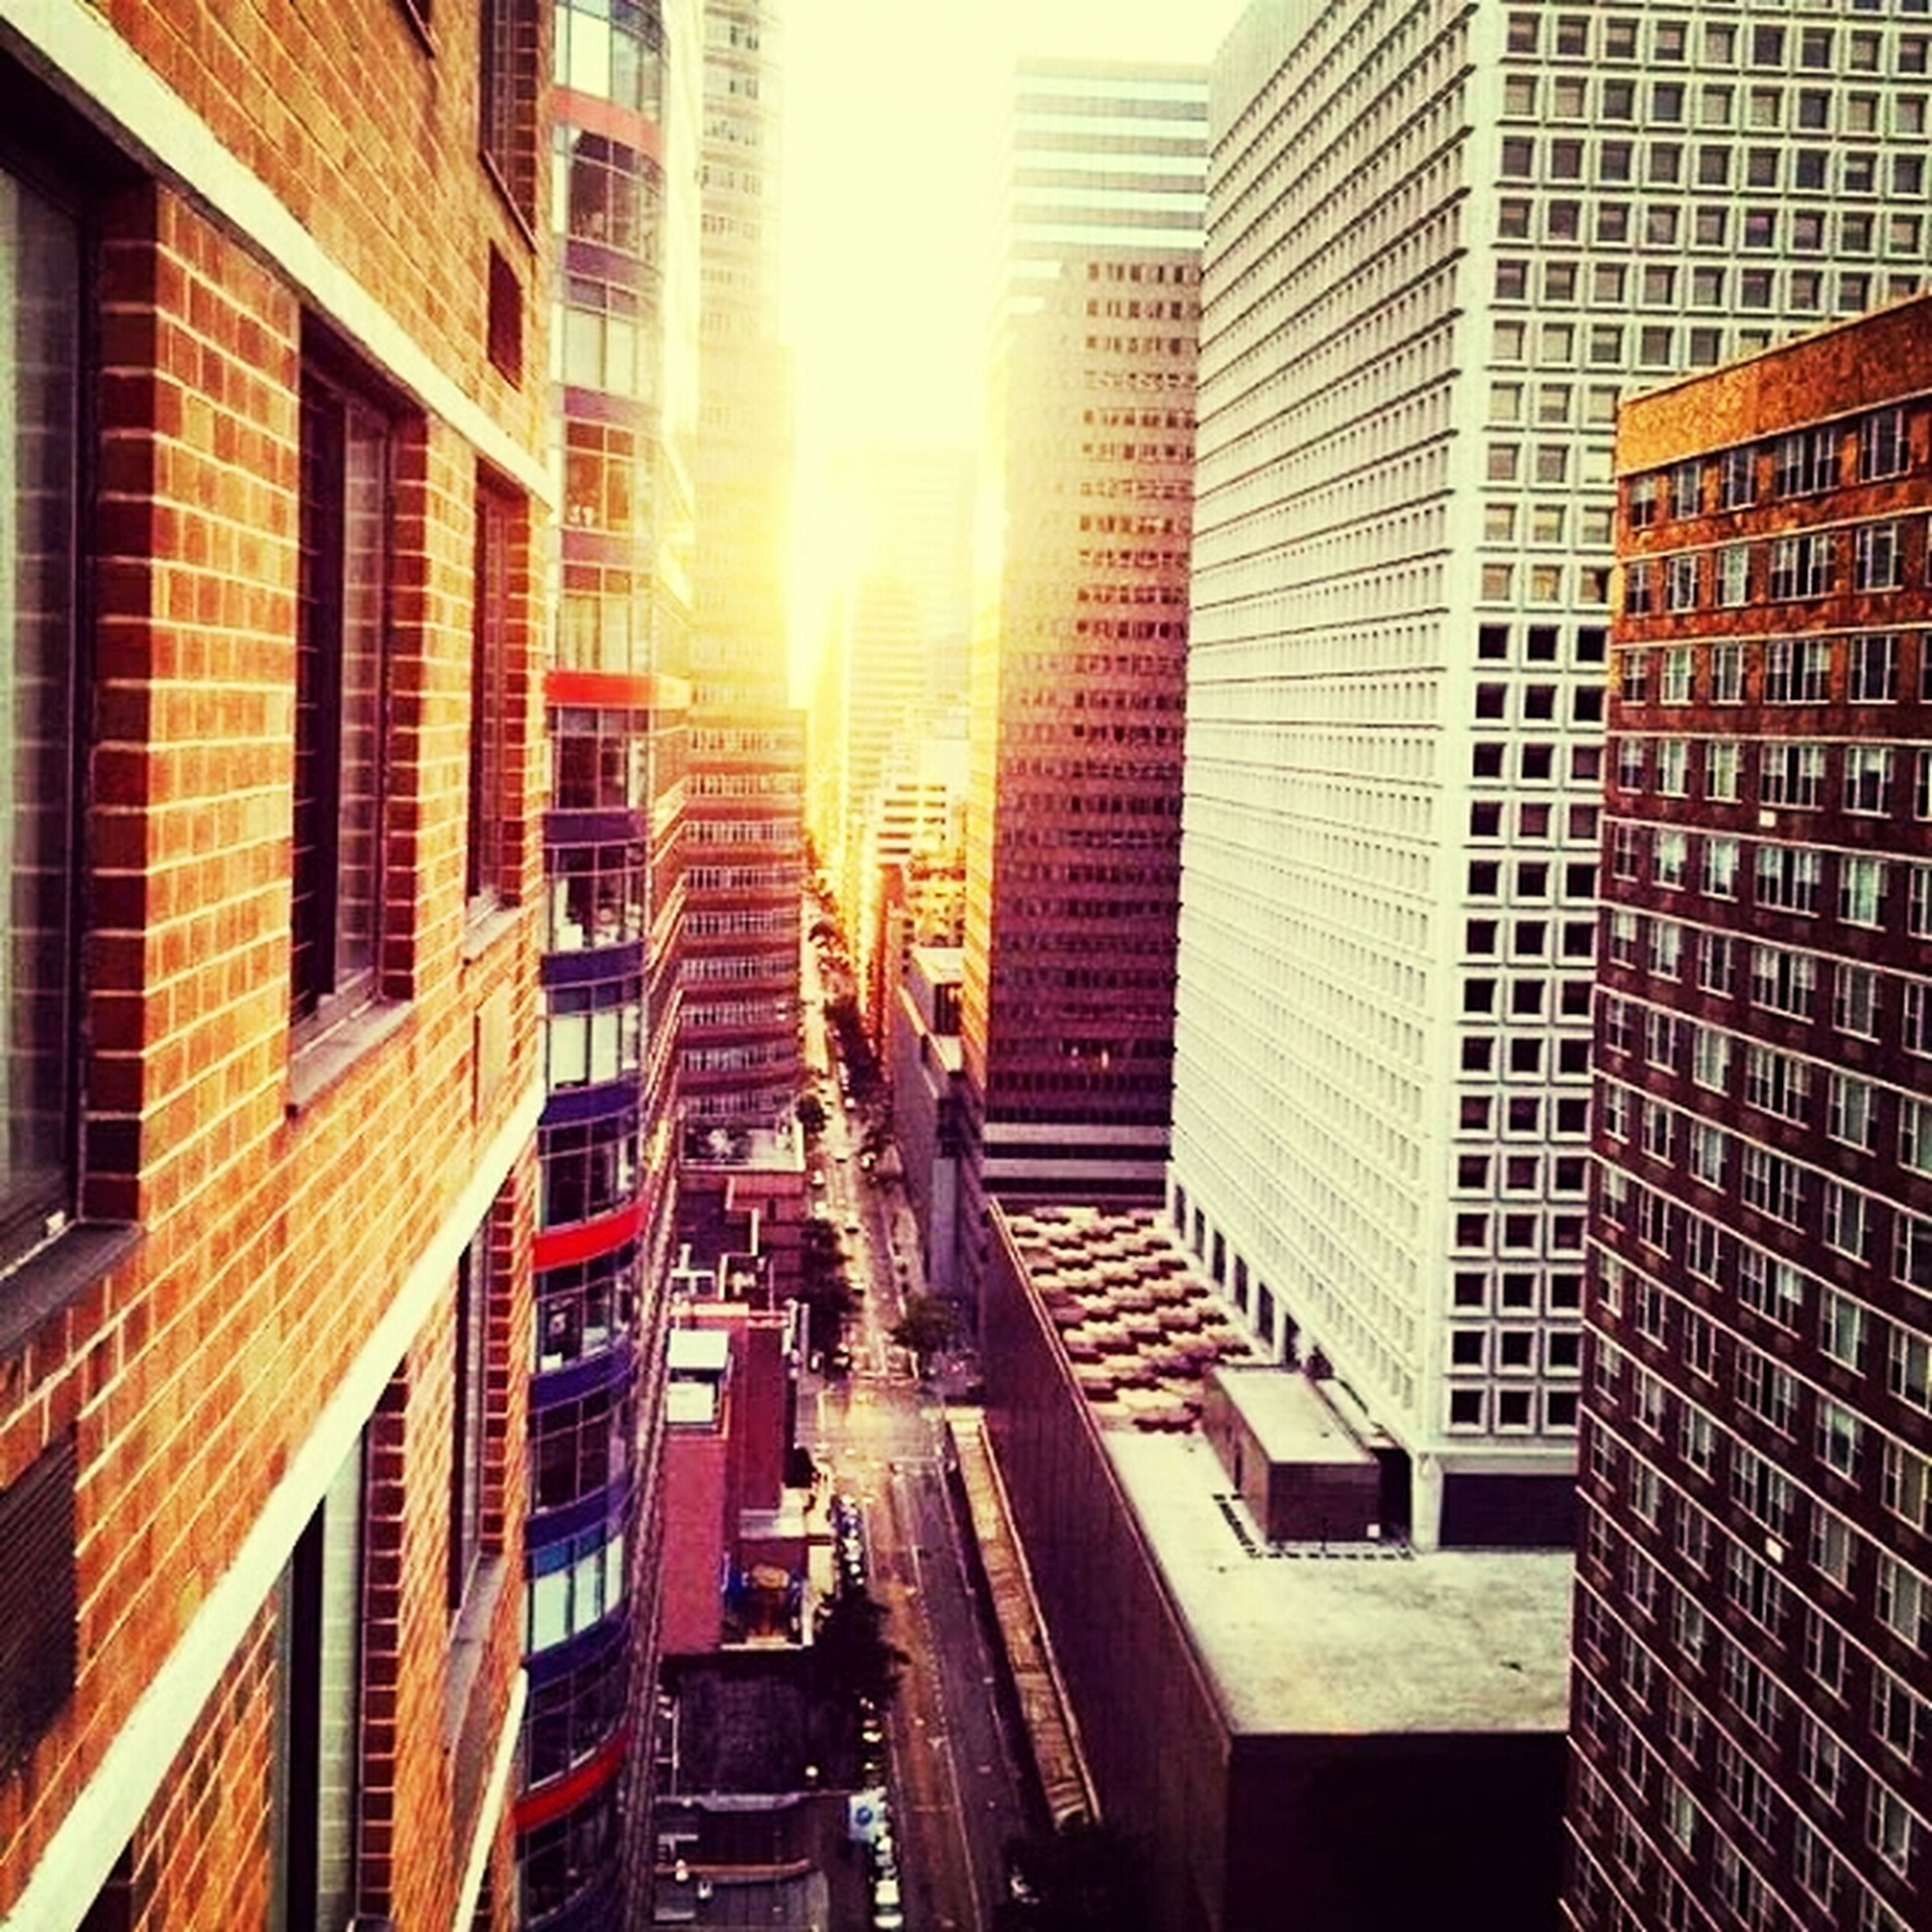 building exterior, architecture, built structure, city, building, residential building, residential structure, window, skyscraper, office building, low angle view, sunlight, city life, apartment, day, modern, outdoors, no people, tall - high, balcony